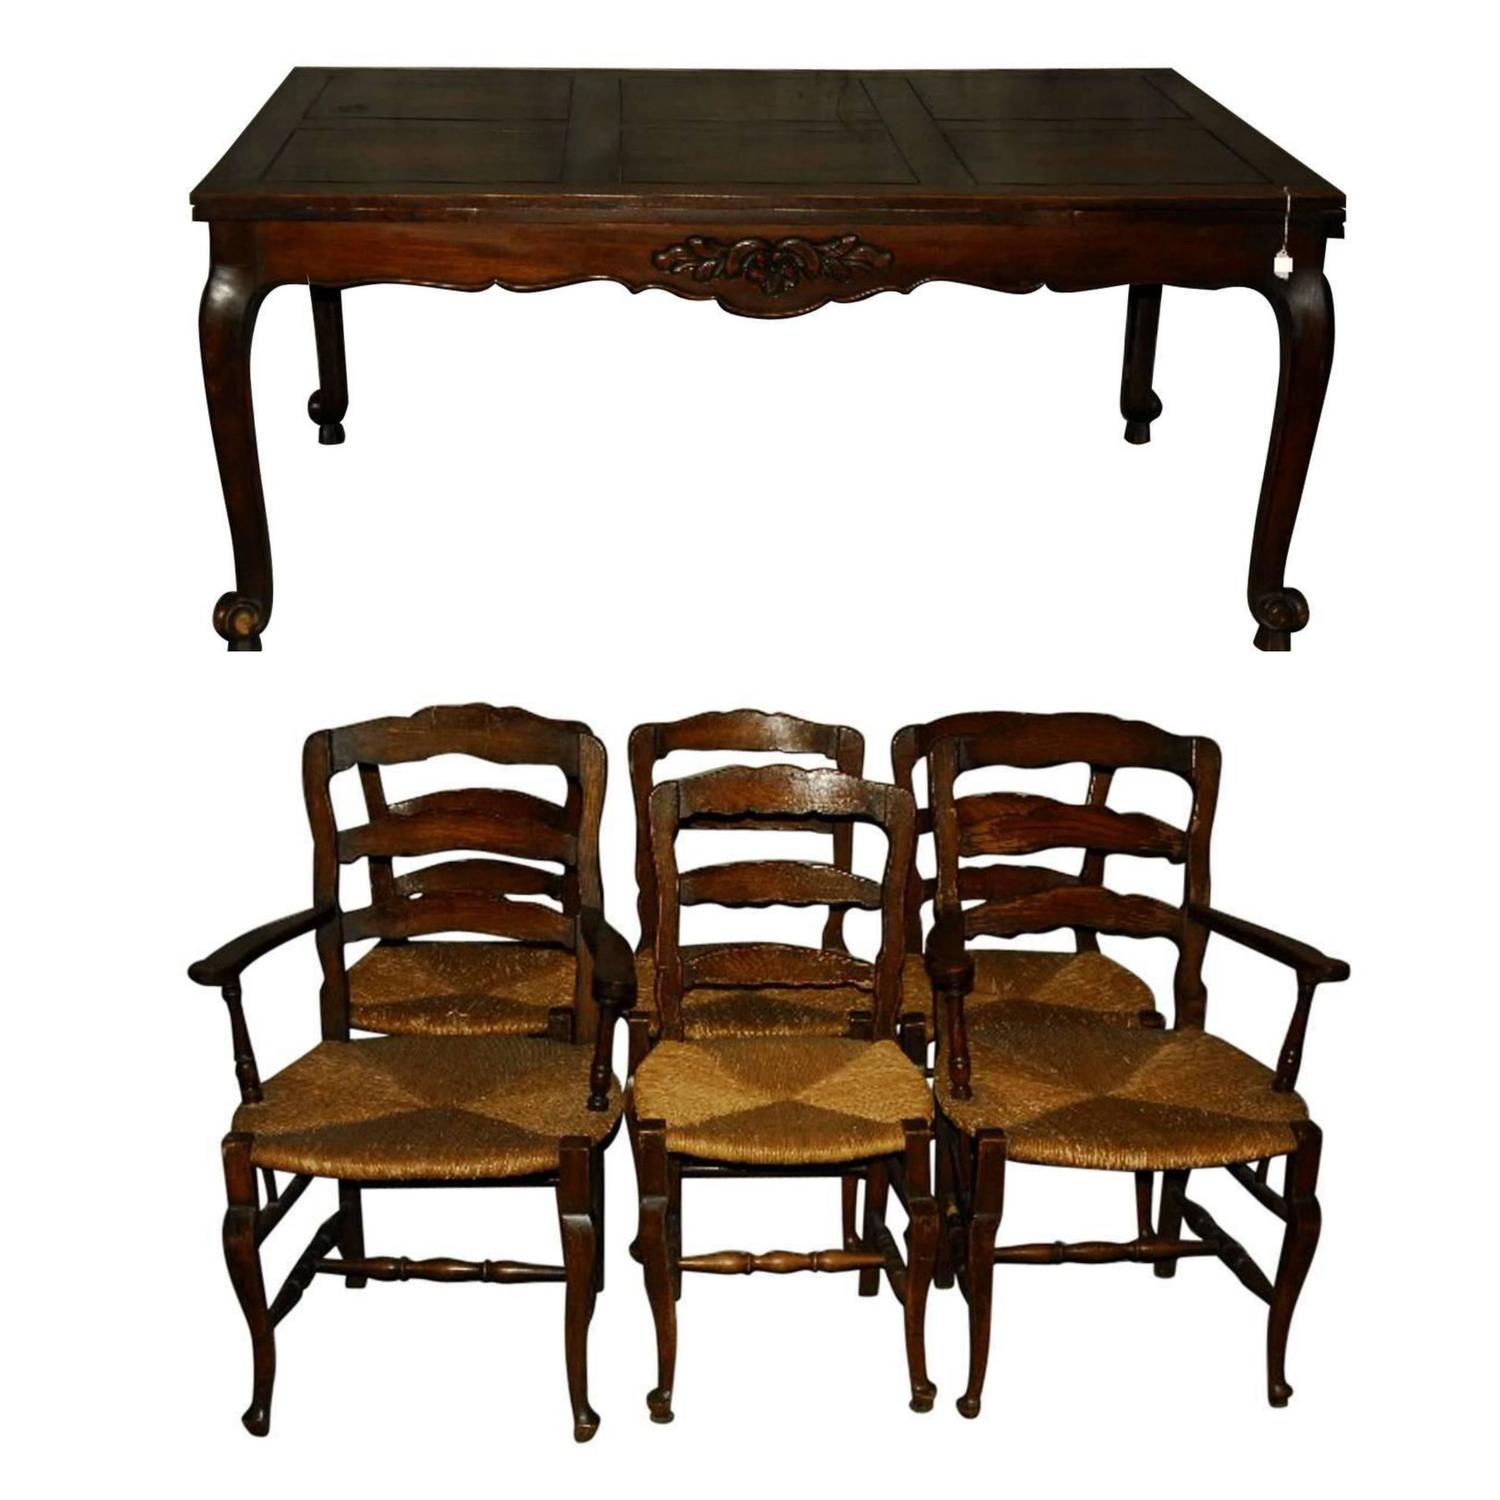 French Country Dining Table And Chairs: 19th Century French Country Carved Oak Dining Table And